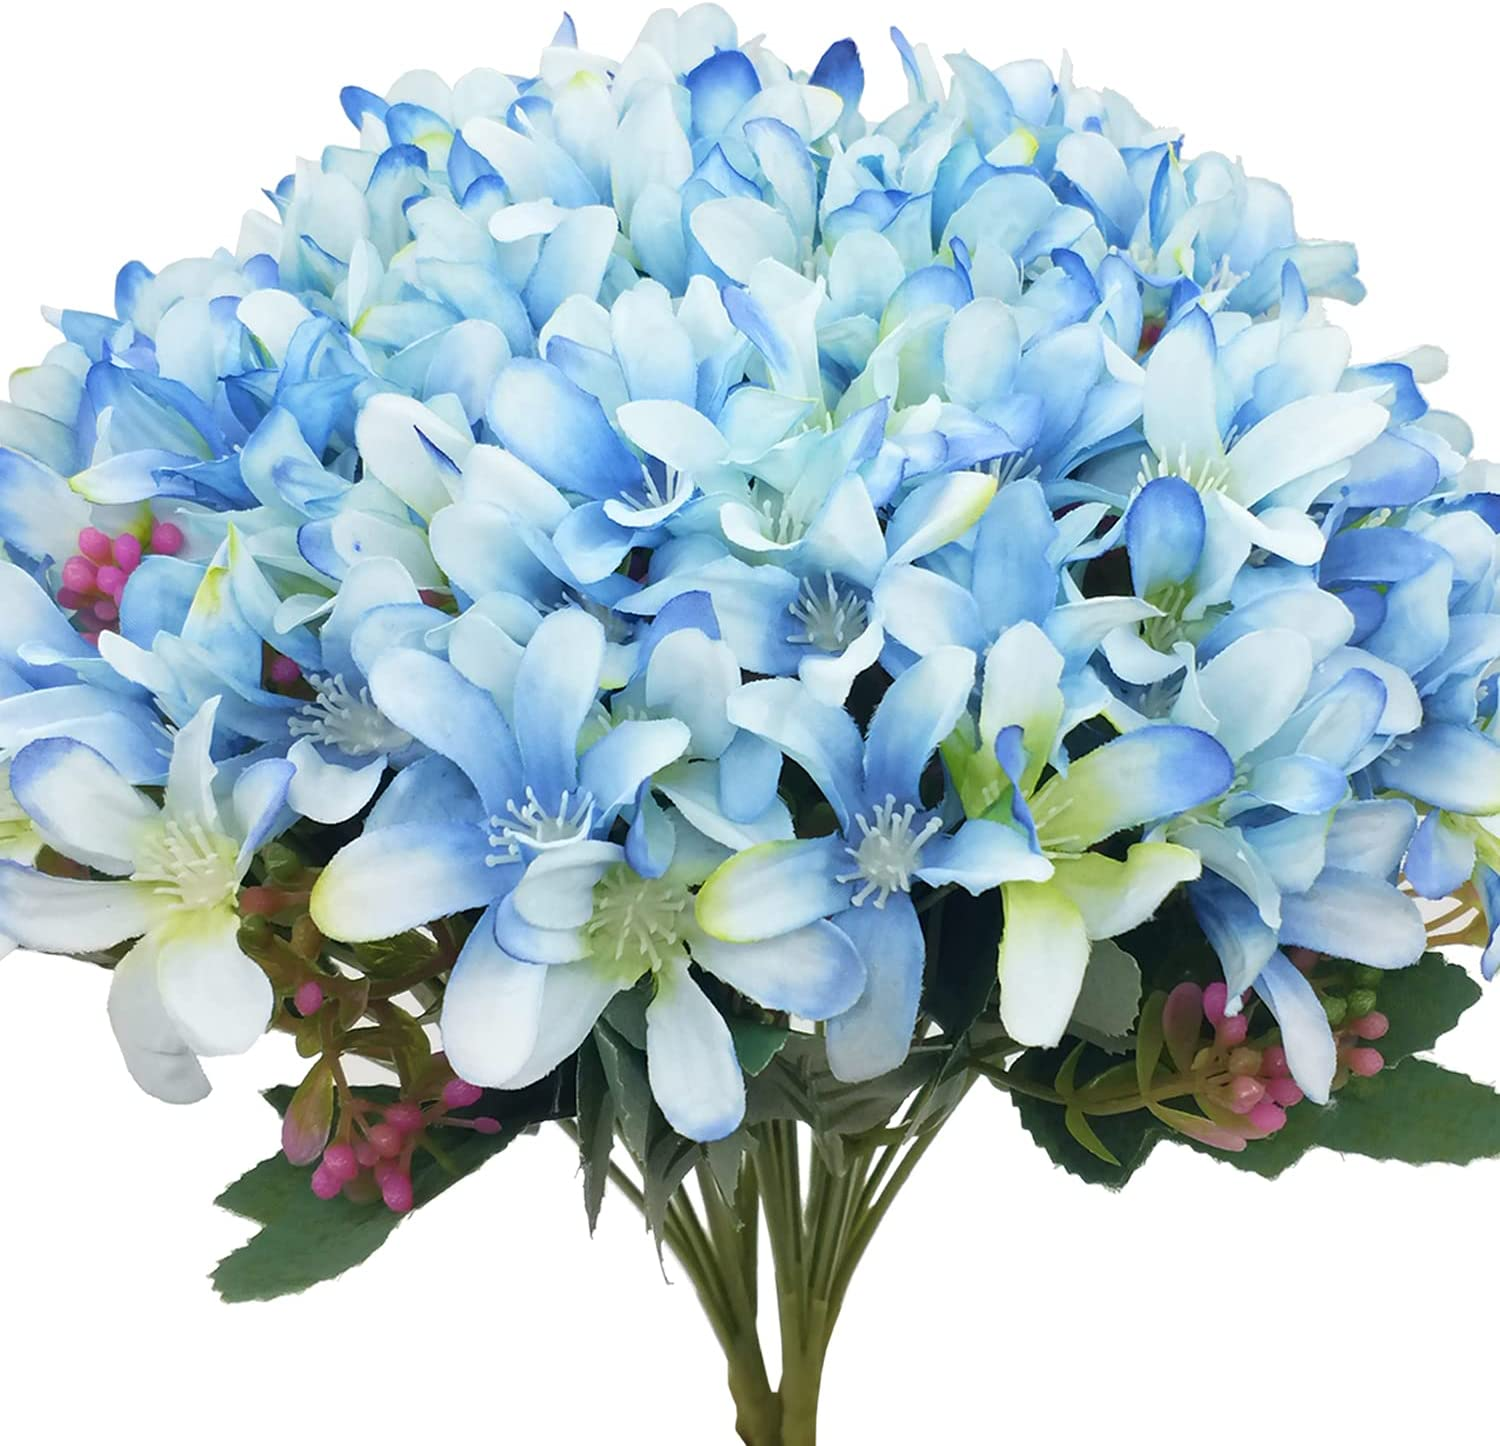 CORVYUC 6 Bundles Artificial Daffodil Silk Flowers Indoor Outdoor Faux Fake Flowers for Home Kitchen Office Garden Porch Window Table Vase Wedding Bouquet Decor (Blue)